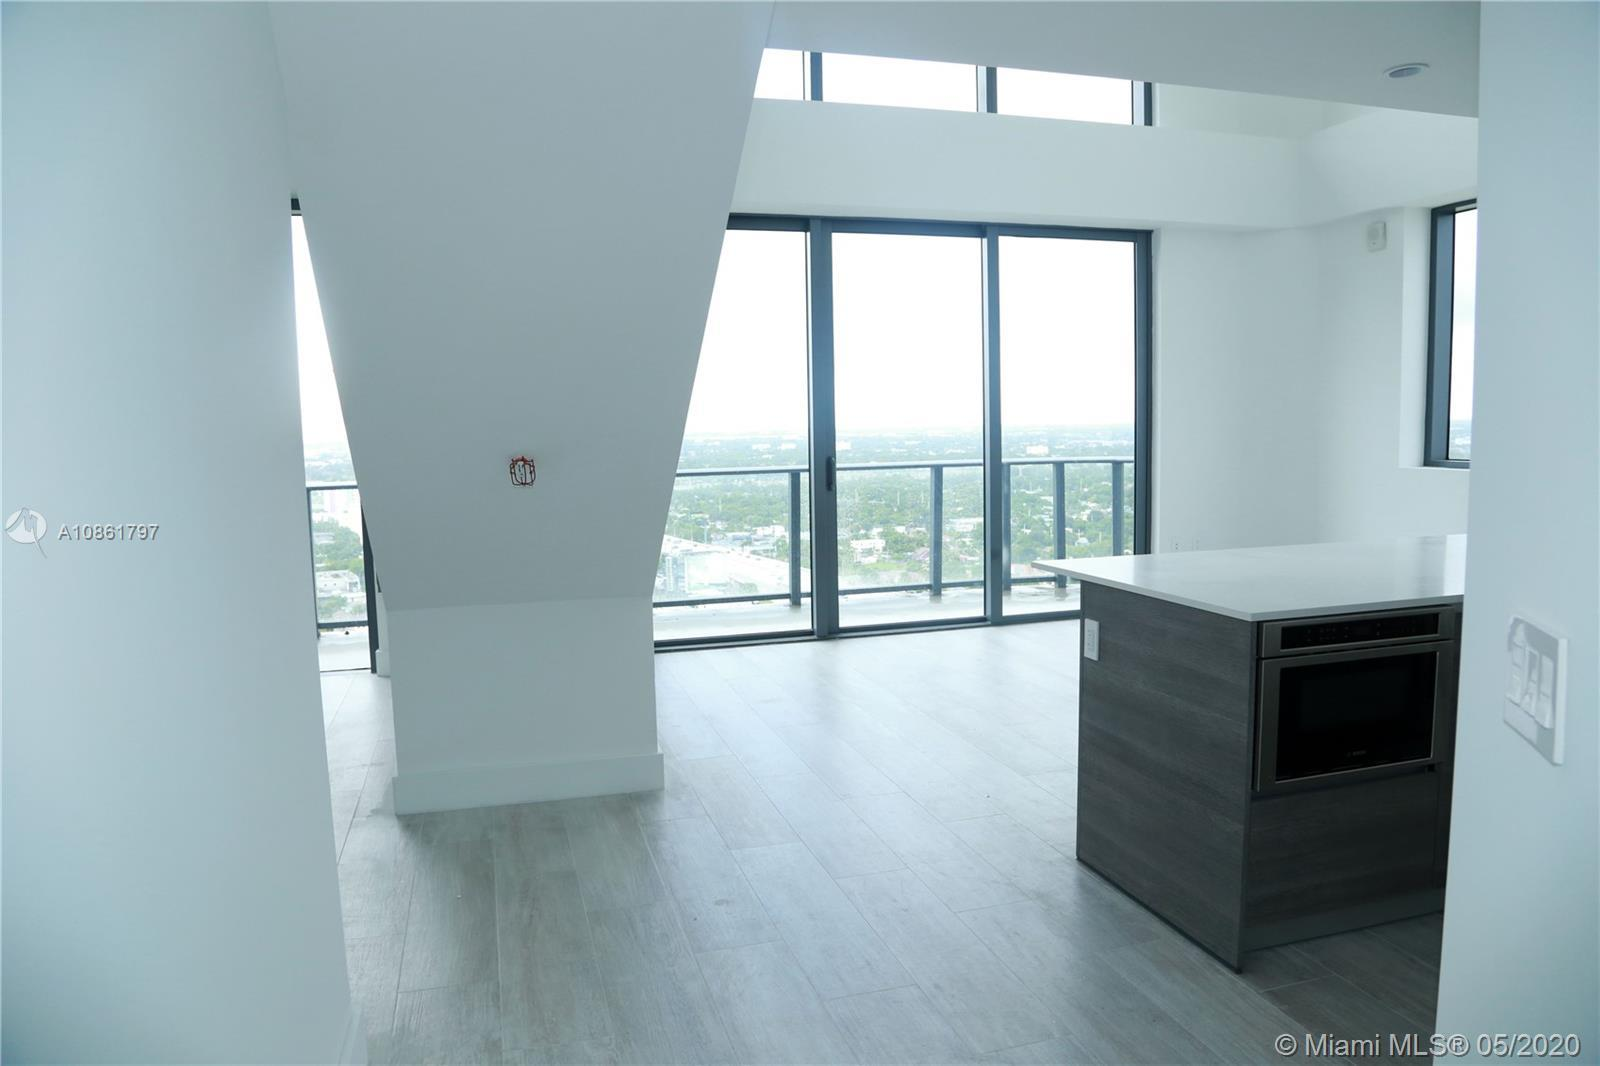 3 Level Penthouse... 4 bedroom open. Espectacular Bay view and Skyline. Private roof top with Jacuzz